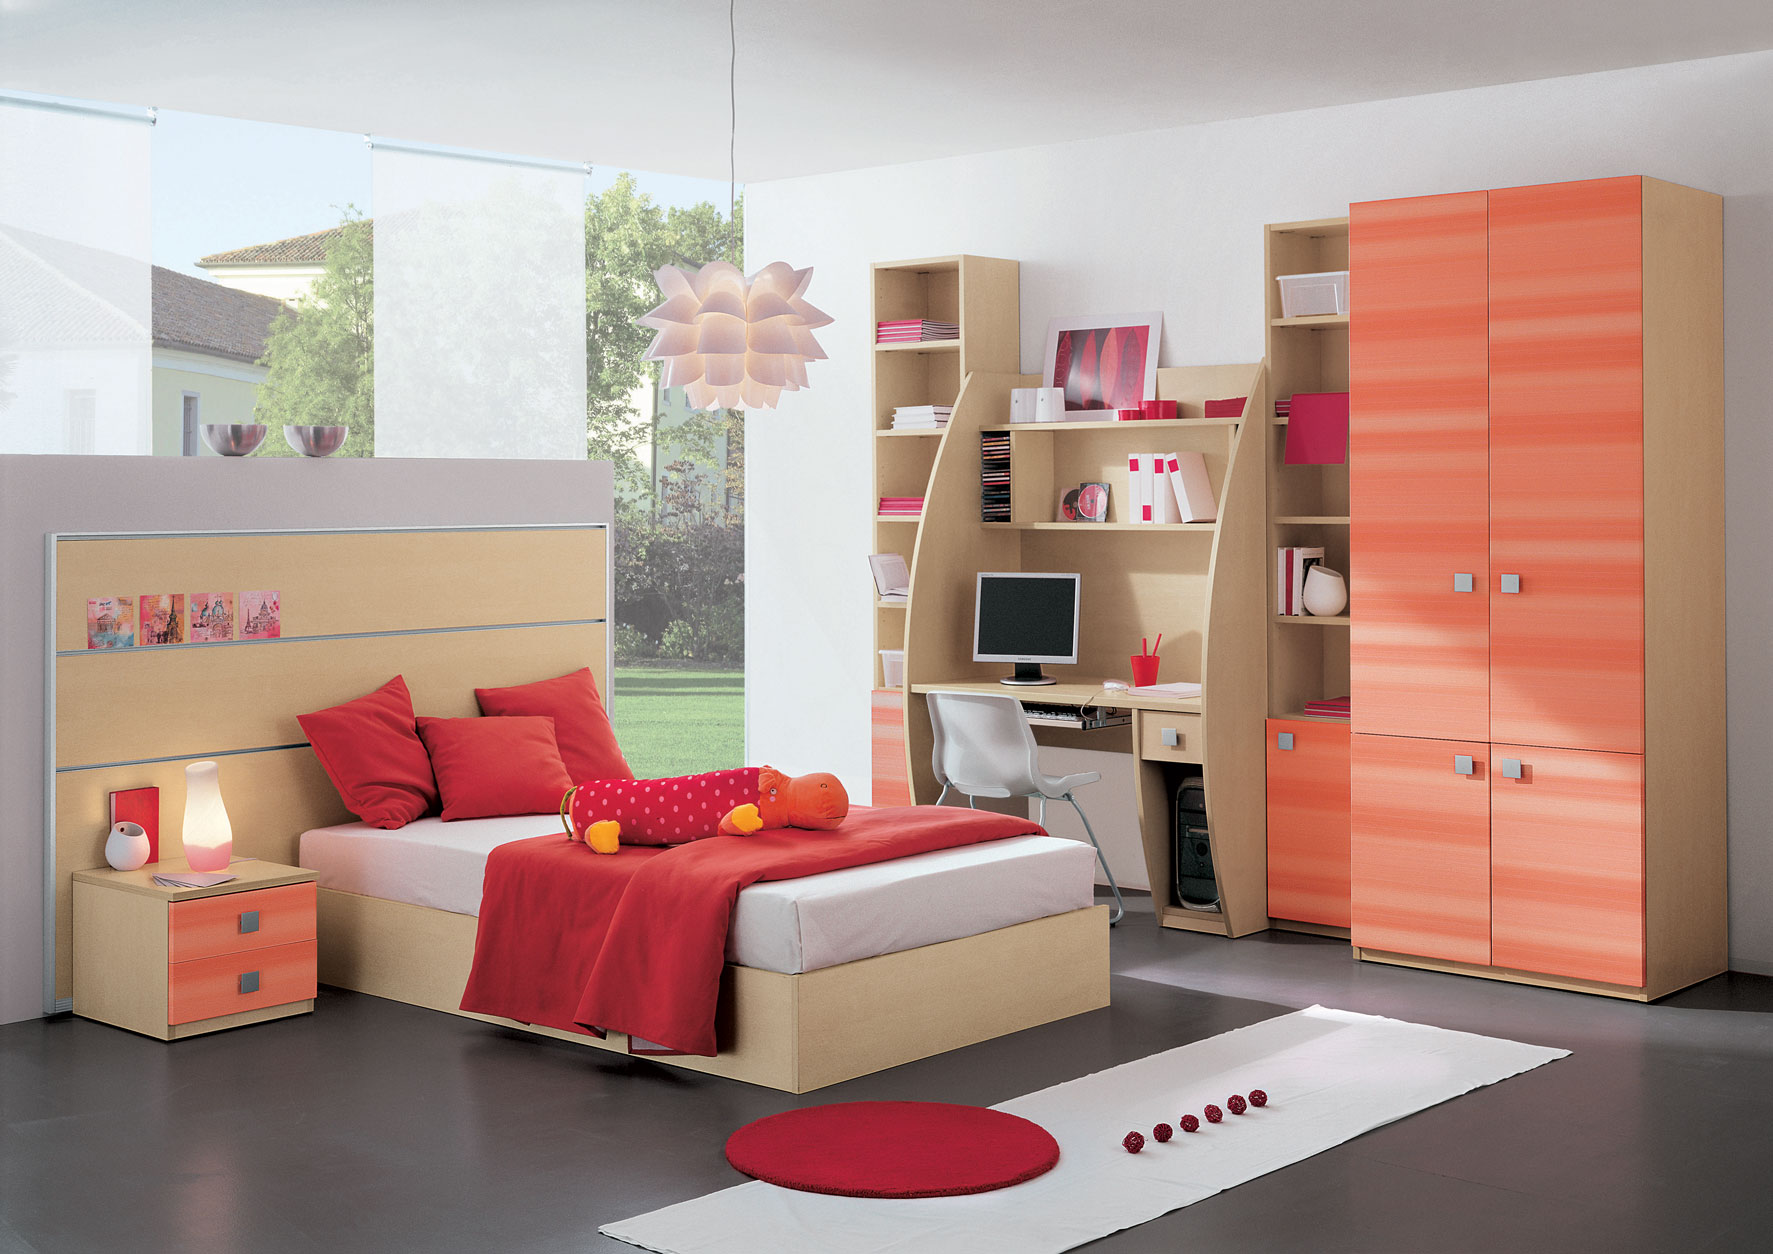 Awesome-Kid-Room-Interior-Design